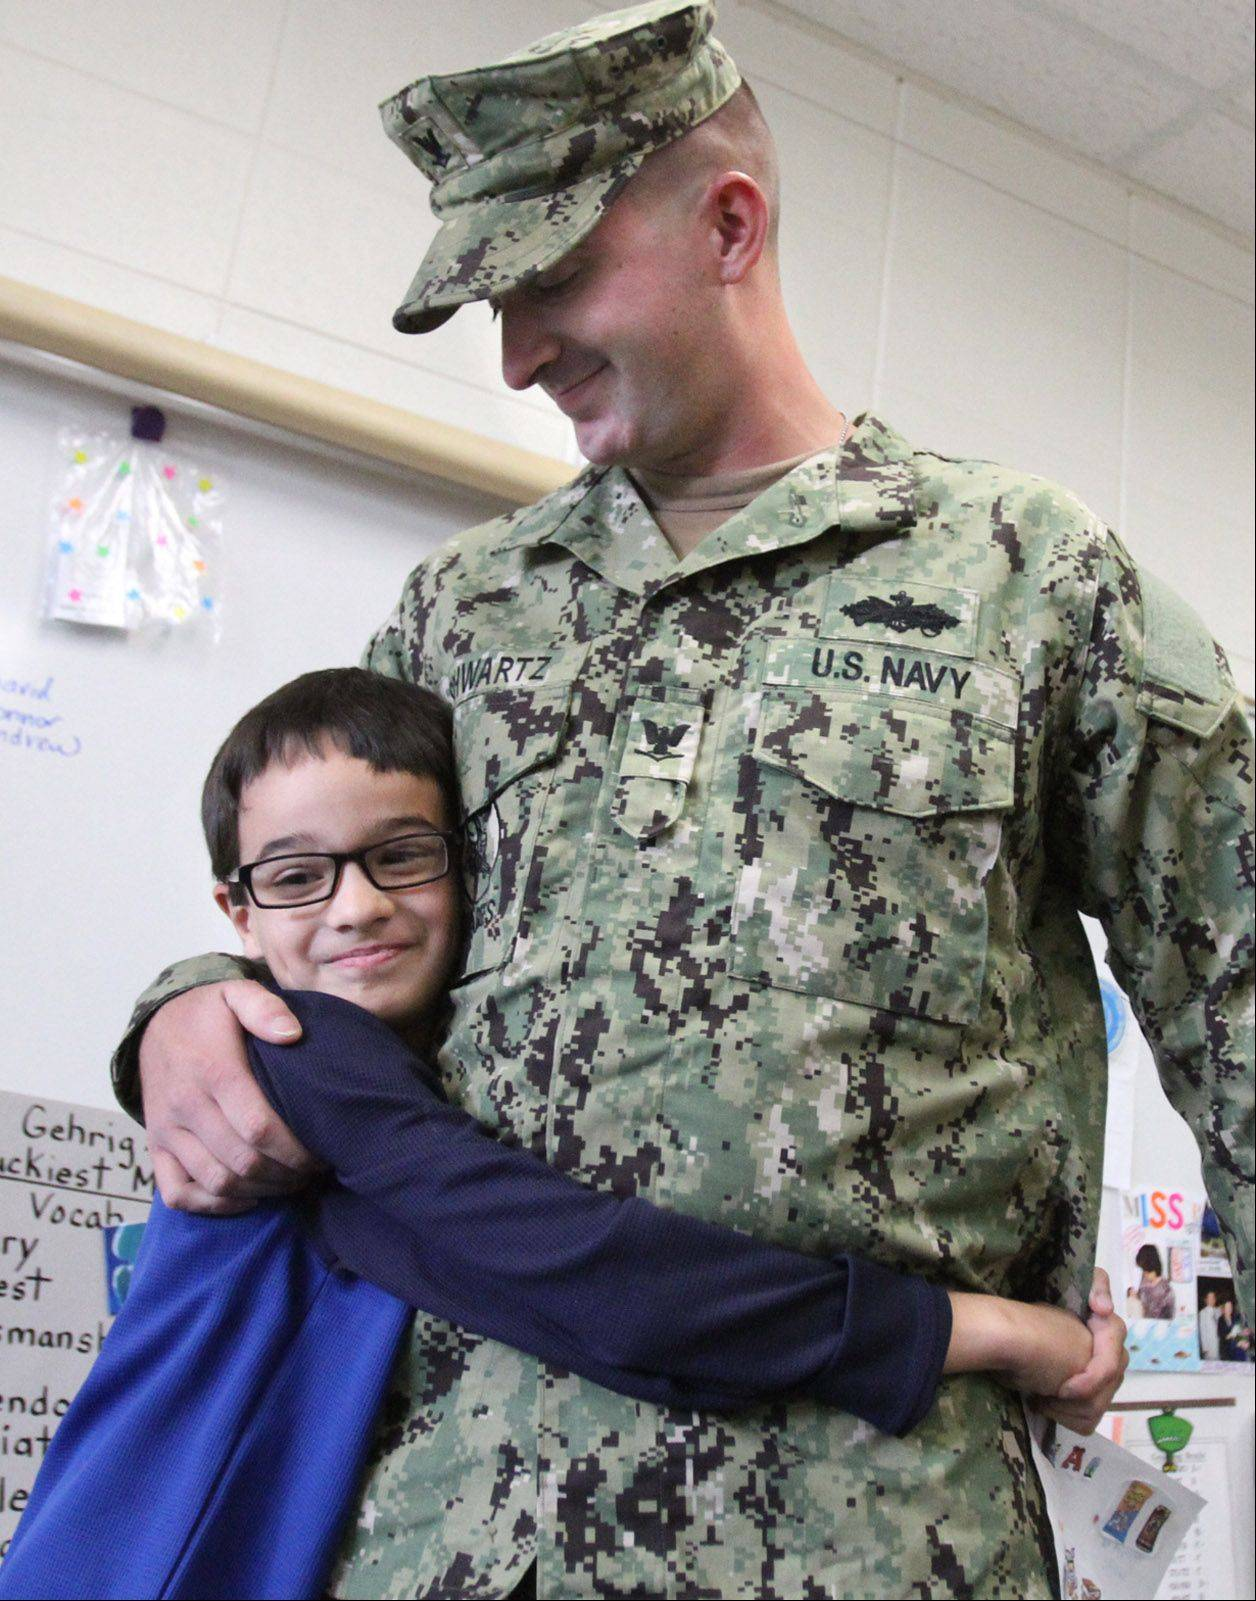 Petty Officer 3rd Class Cameron Schwartz of the U.S. Navy, who was deployed in Afghanistan for eight months, surprises younger brother Julian Trujillo during his fourth-grade class Wednesday at Hunting Ridge School in Palatine.